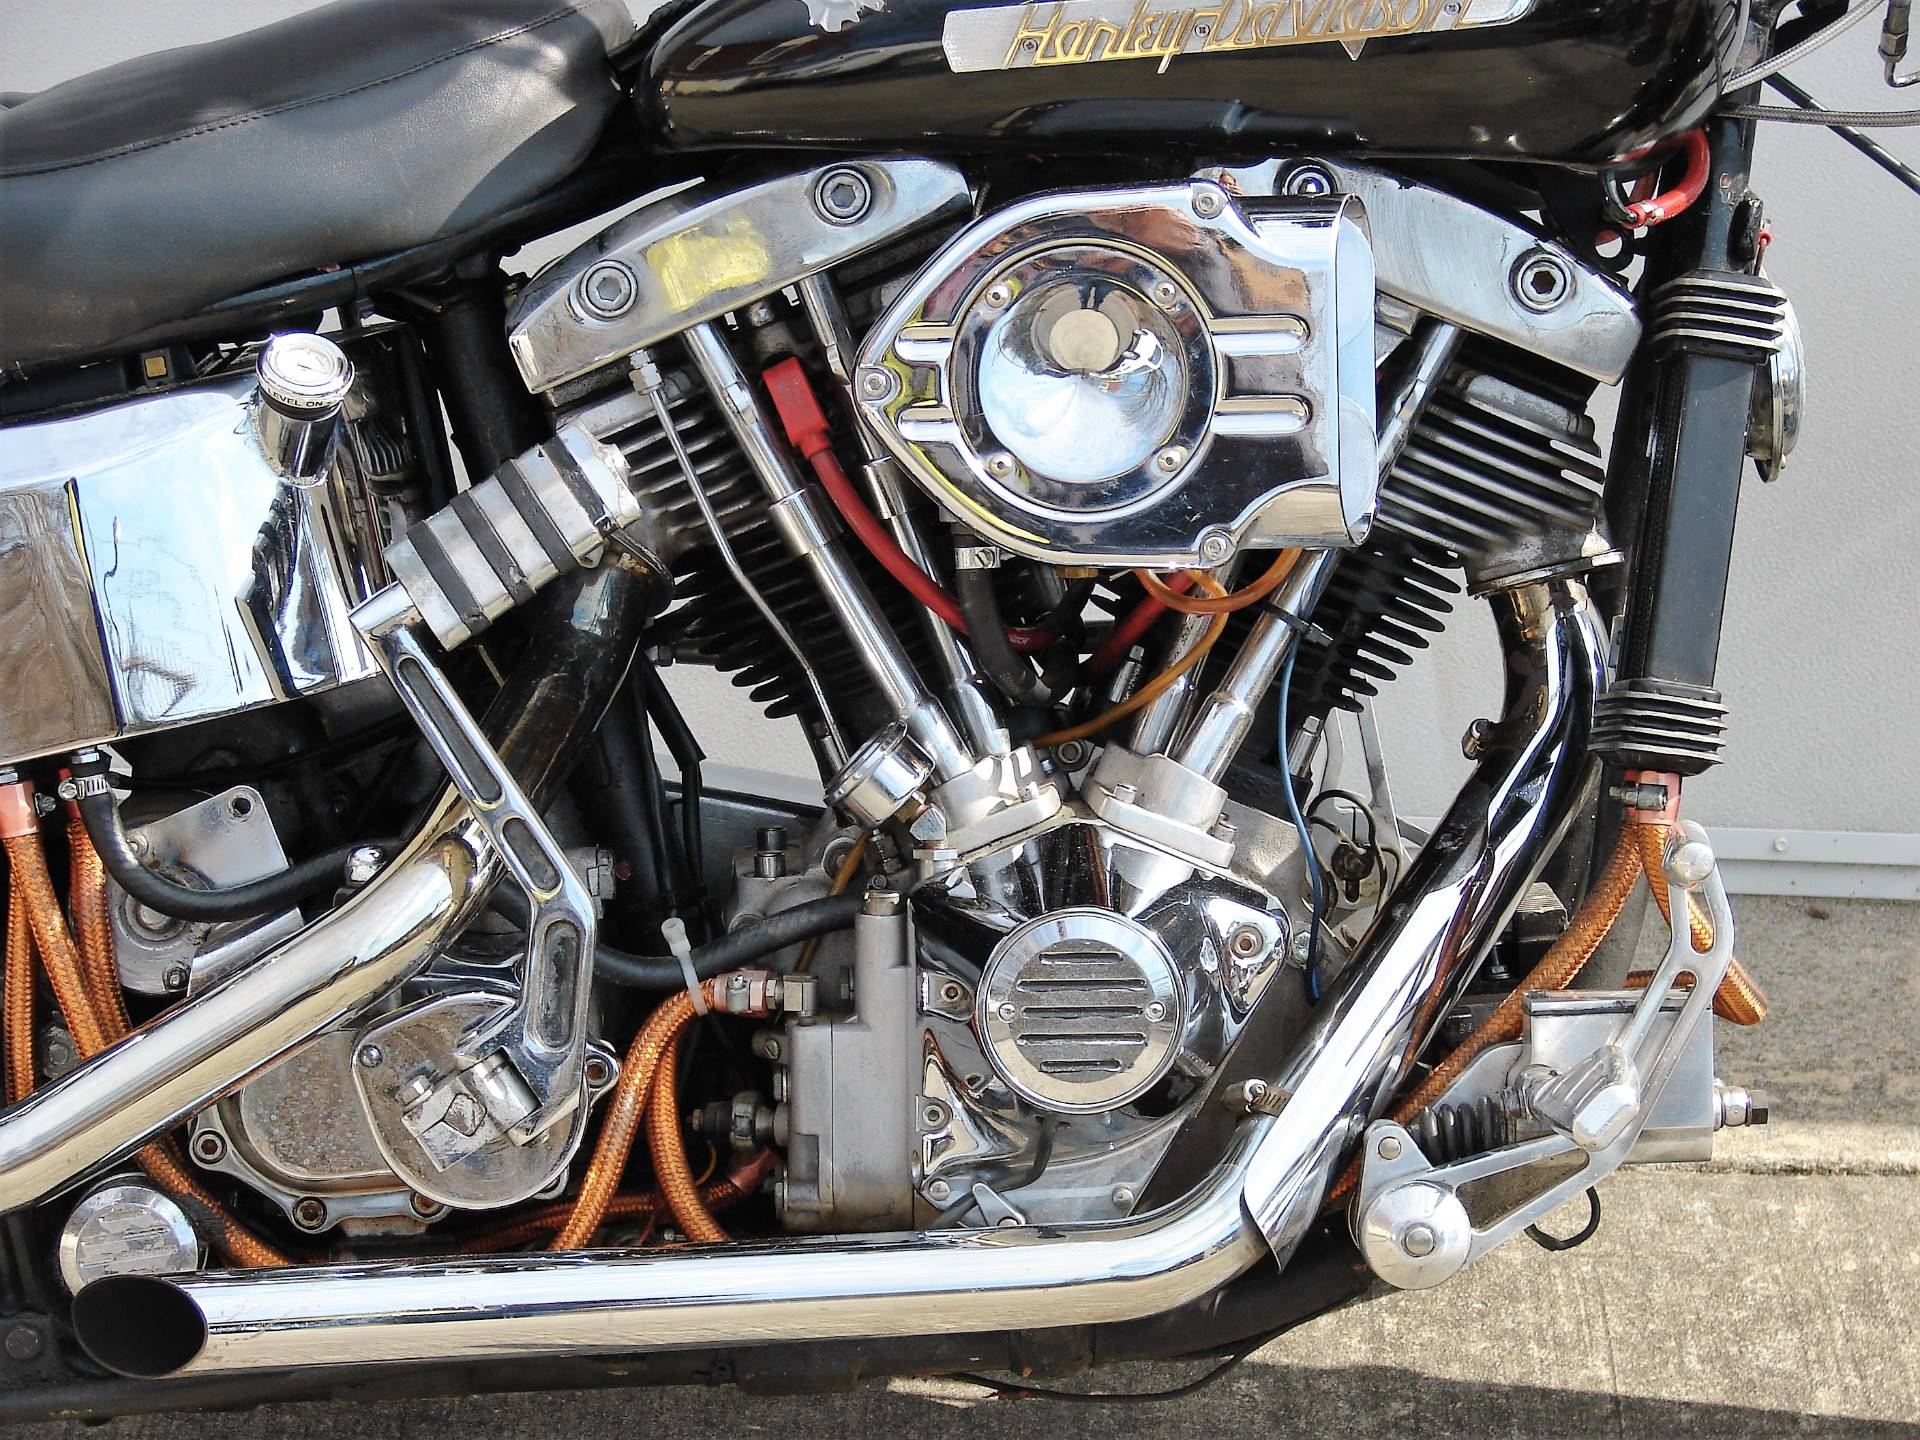 1977 Harley-Davidson Shovel Head  FXS-1200 in Williamstown, New Jersey - Photo 3